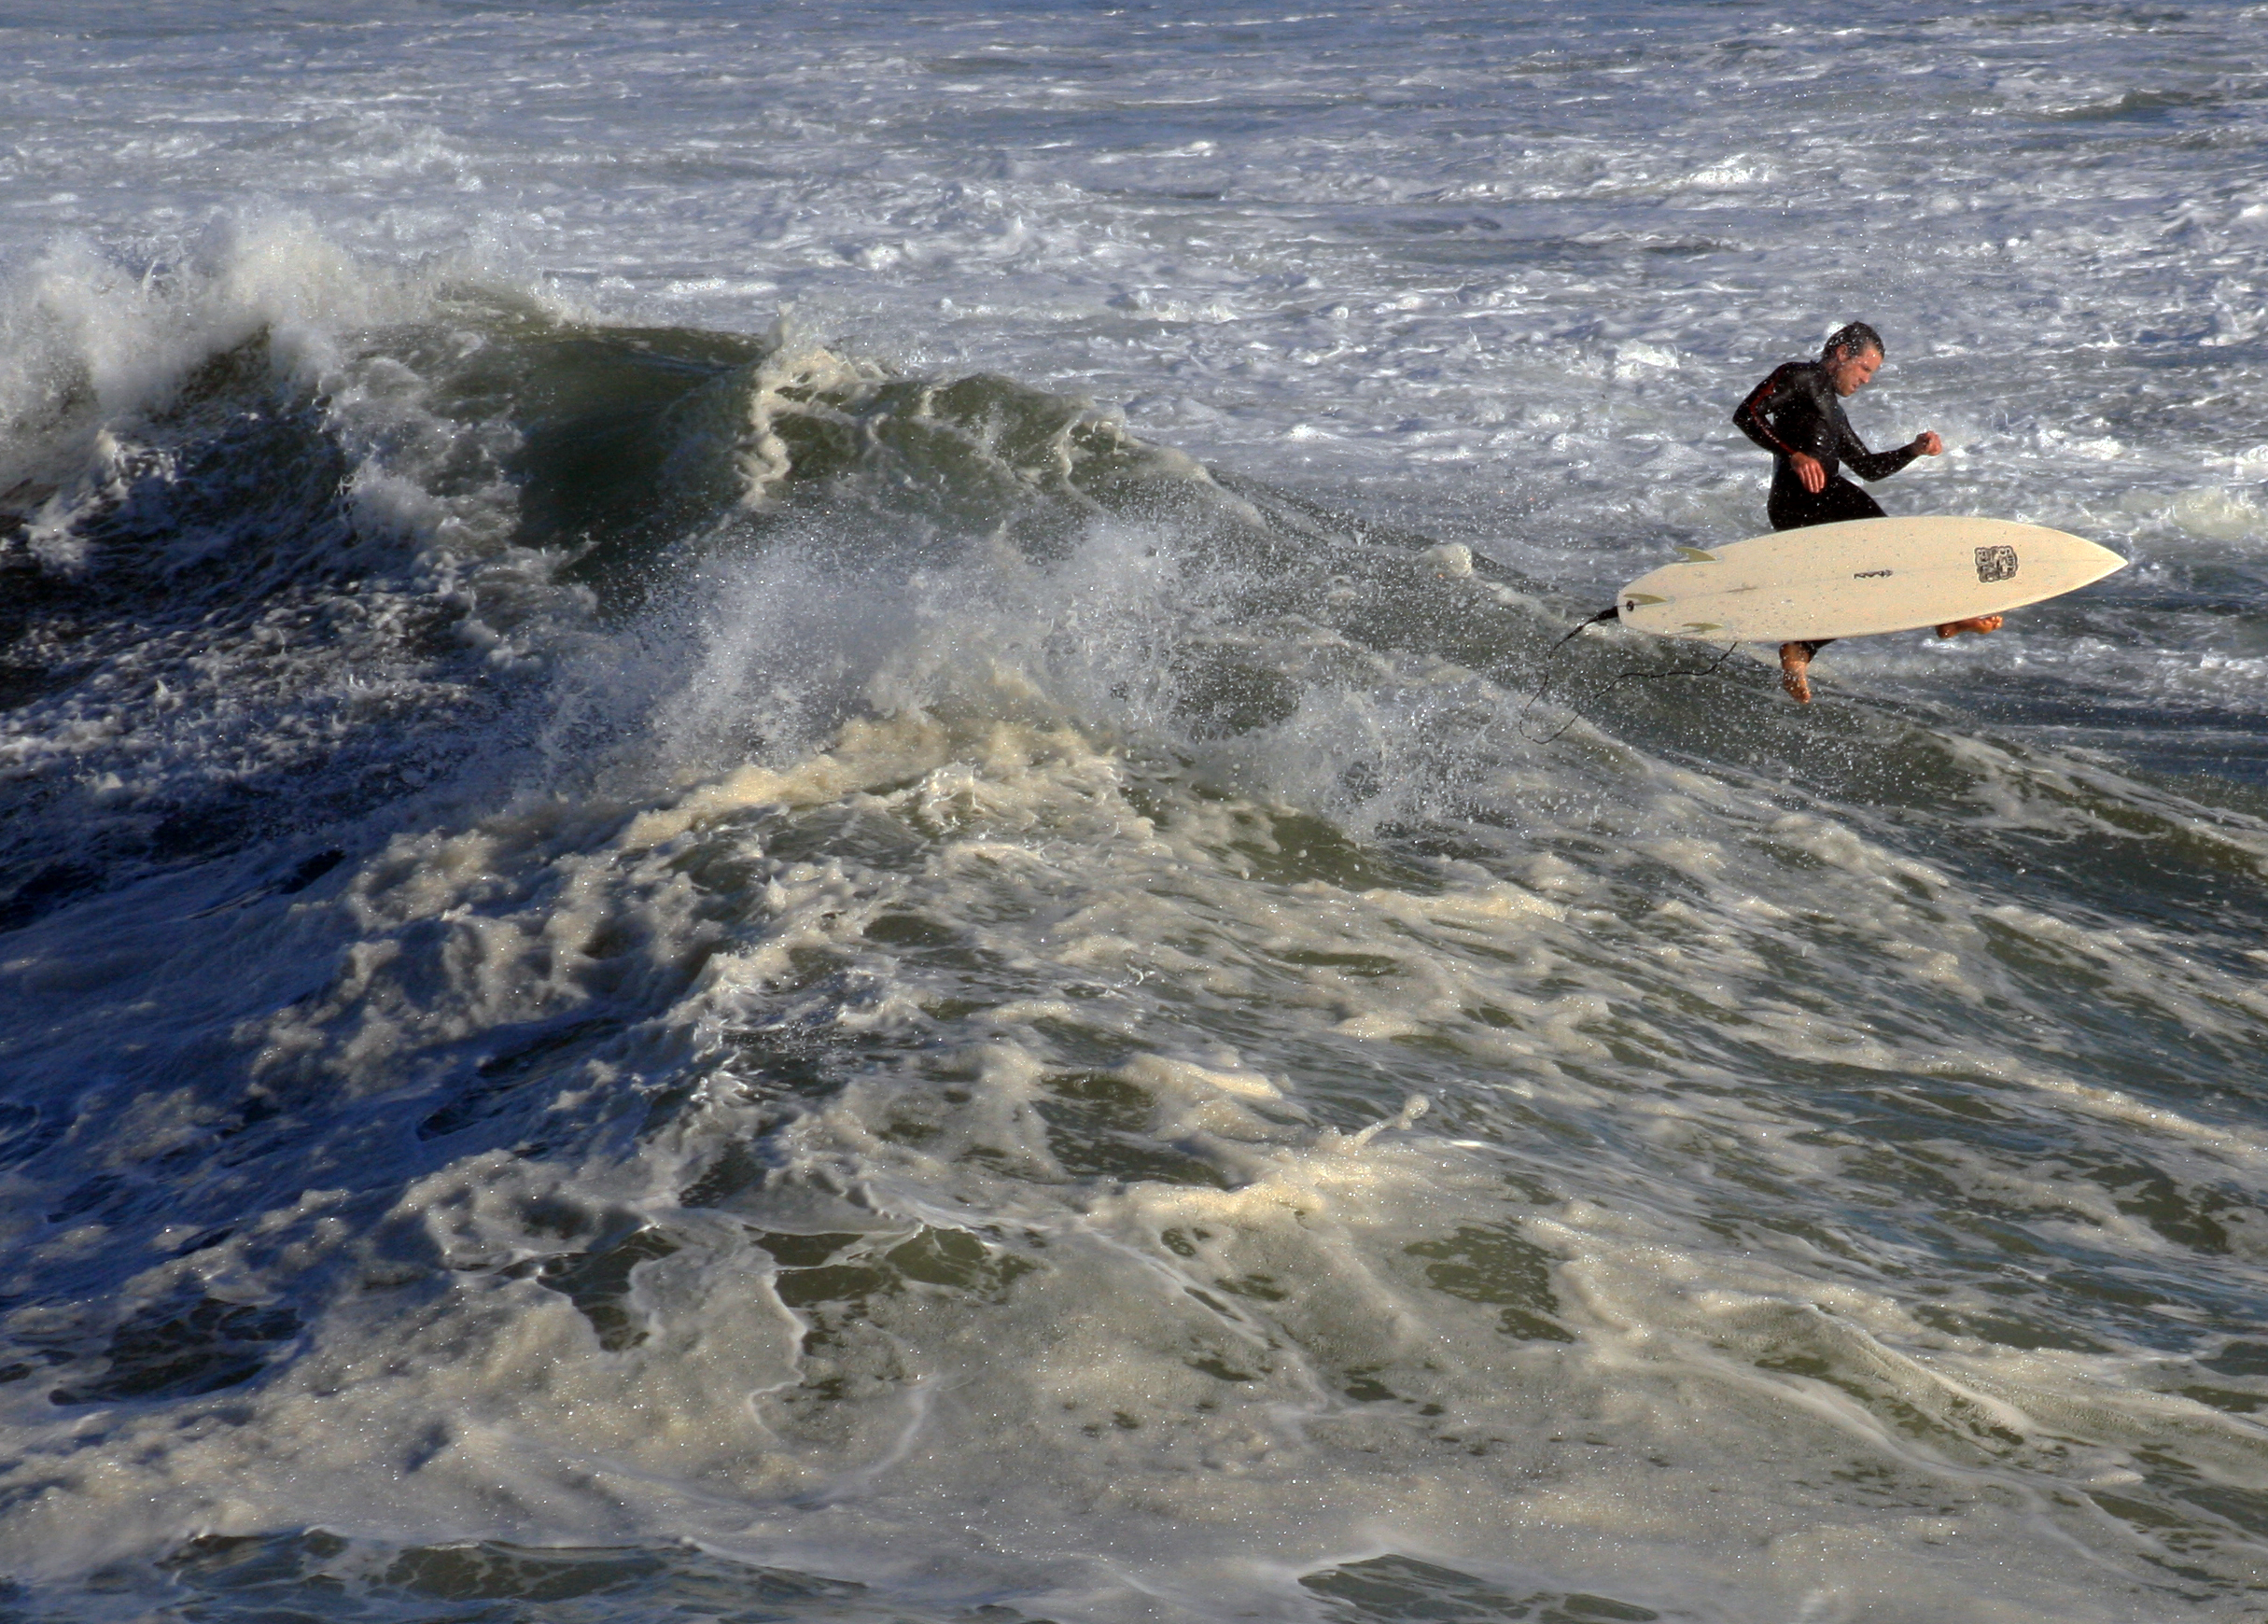 e8085cf47c File A surfer in the air.jpg - Wikimedia Commons